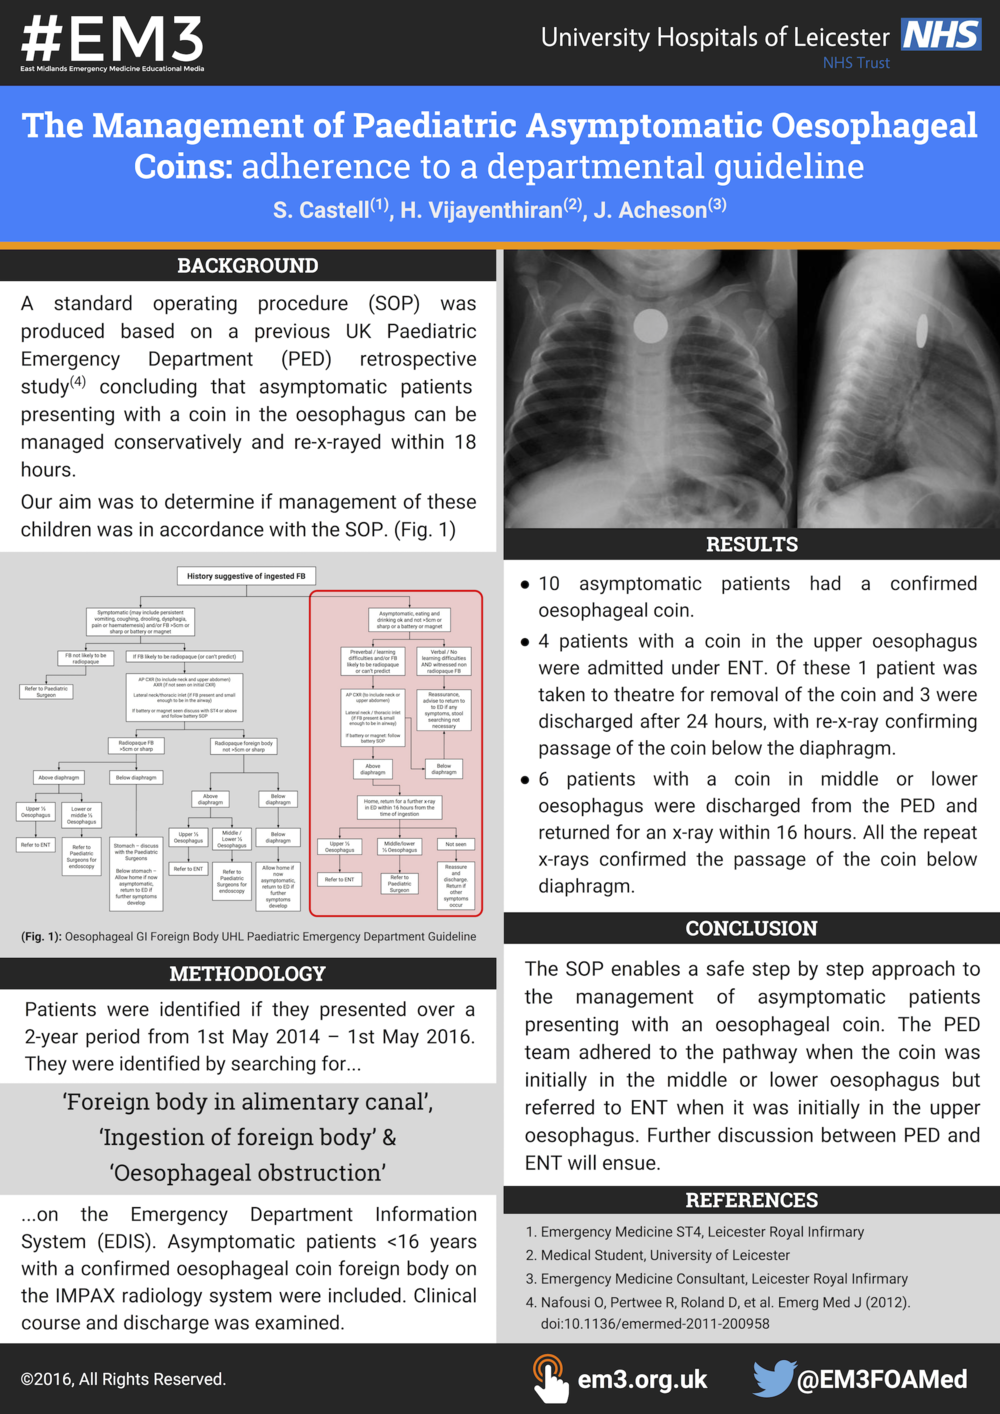 The Management of Paediatric Asymptomatic Oesophageal Coins- adherence to a departmental guideline by Scott Castell (RCEM16 poster - A0).png